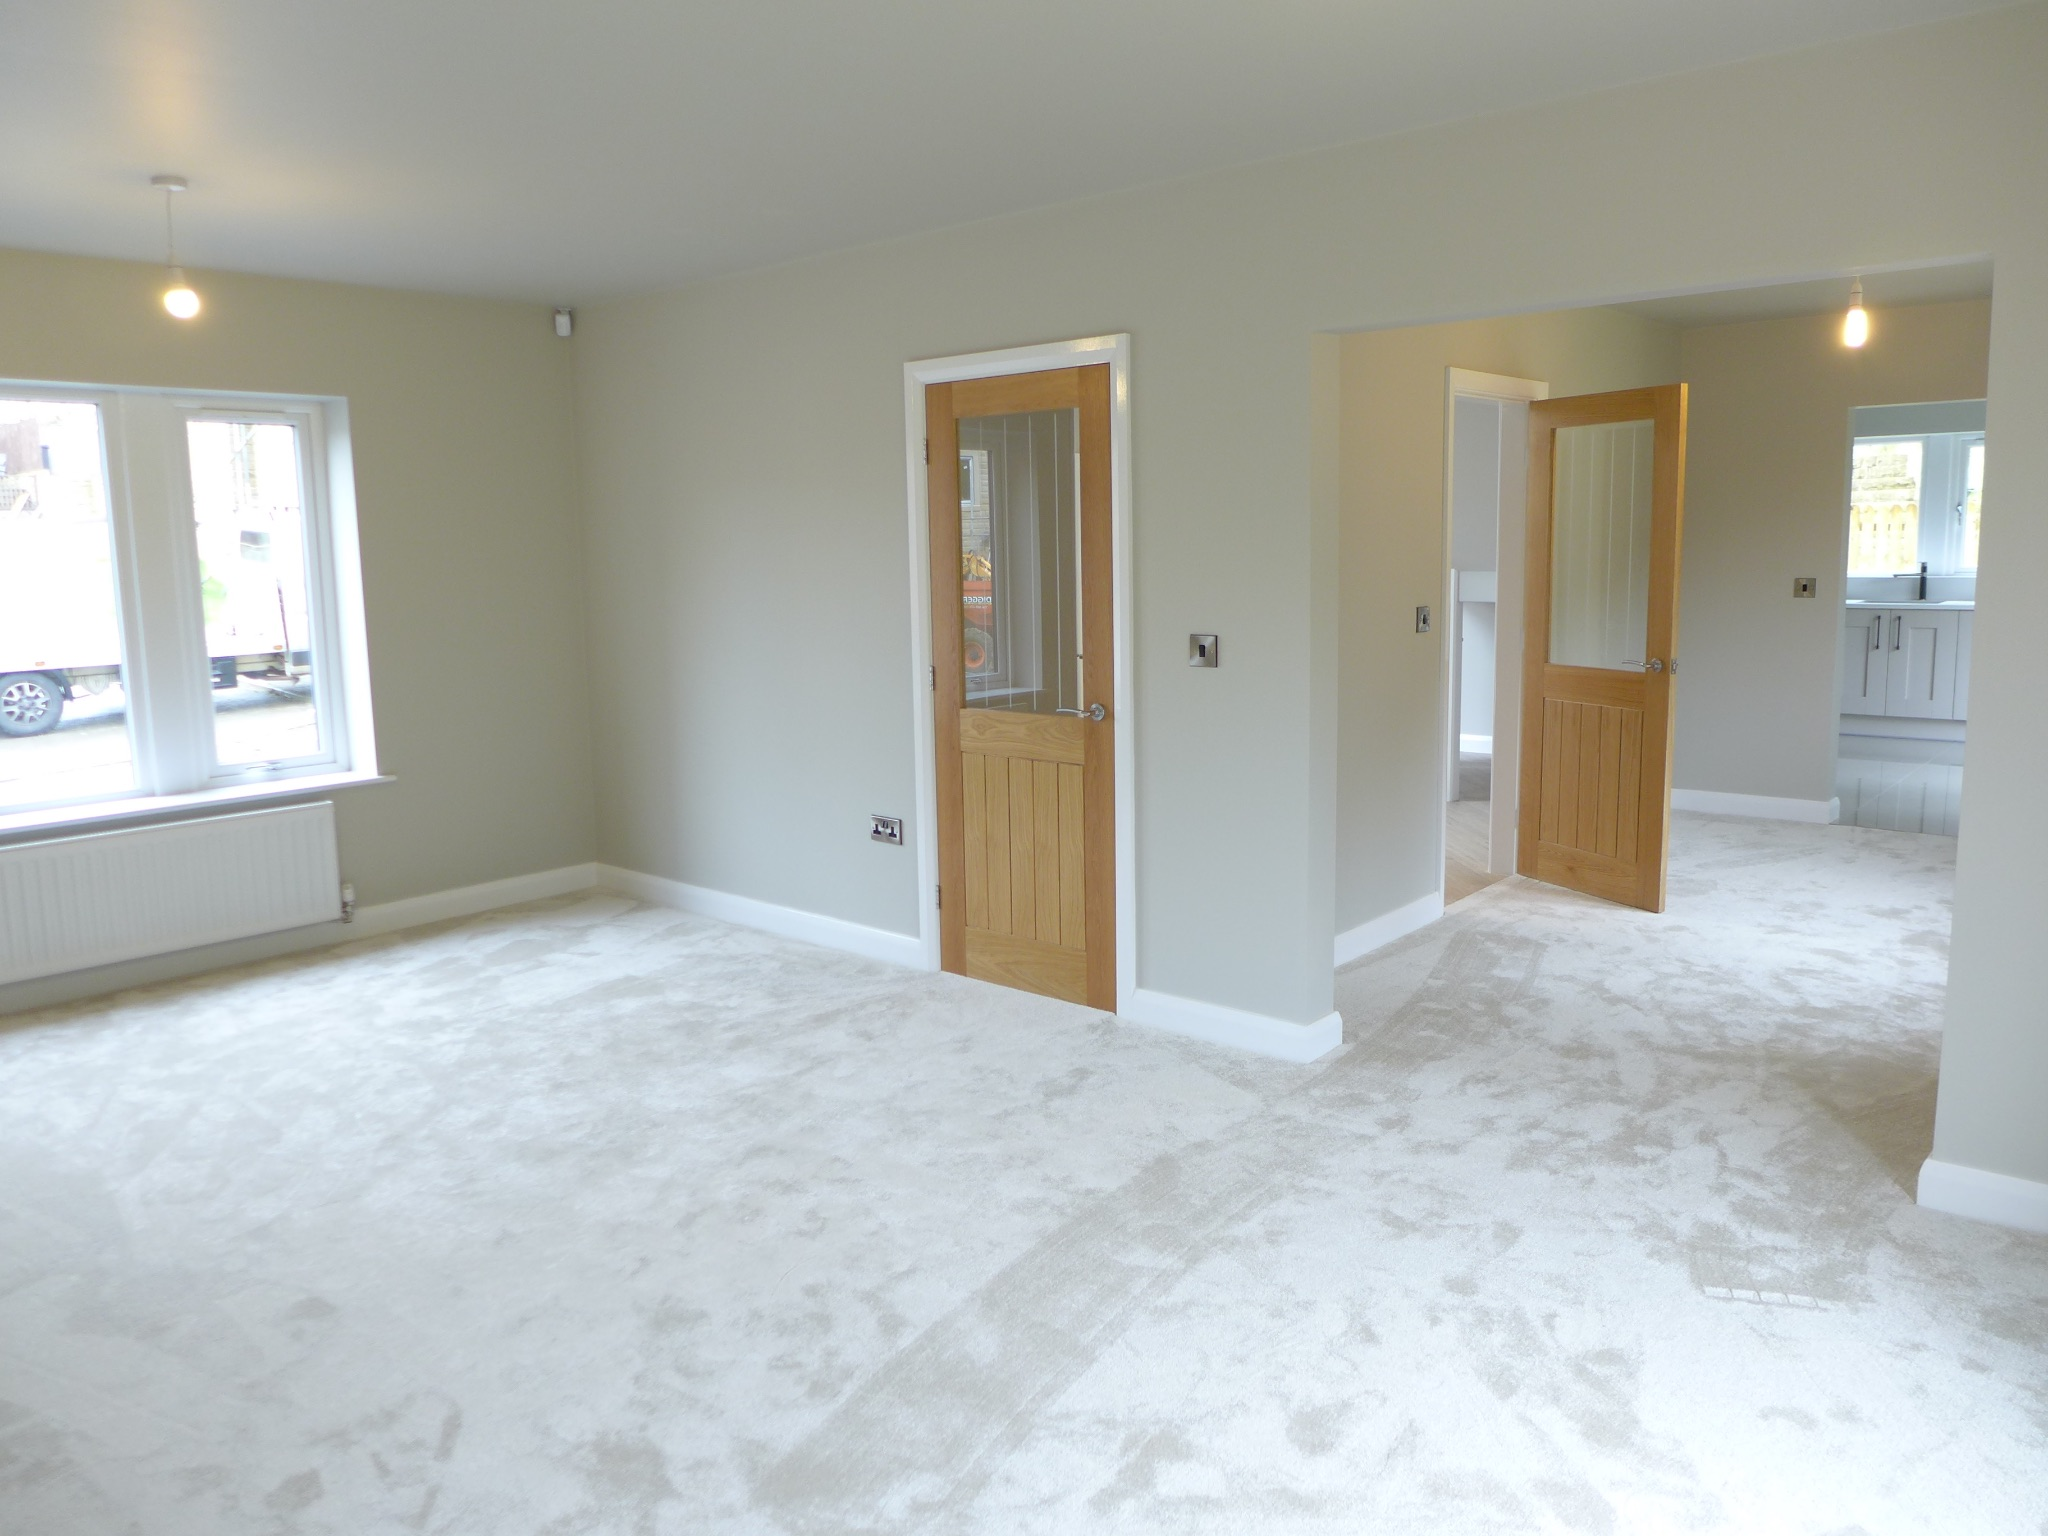 5 bedroom detached house For Sale in Todmorden - Photograph 7.